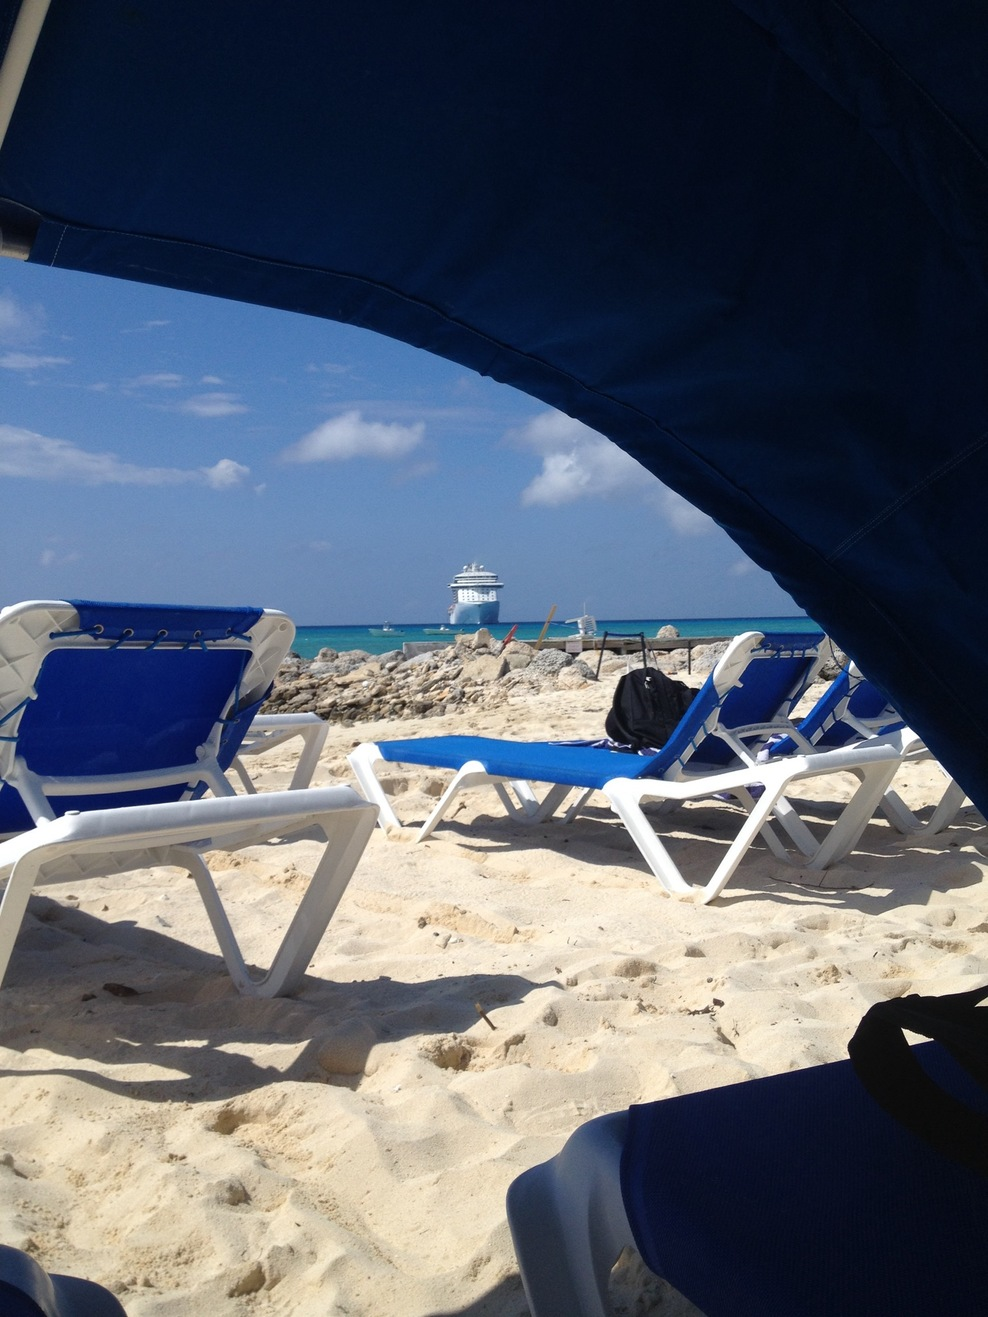 View from our beach clamshell.